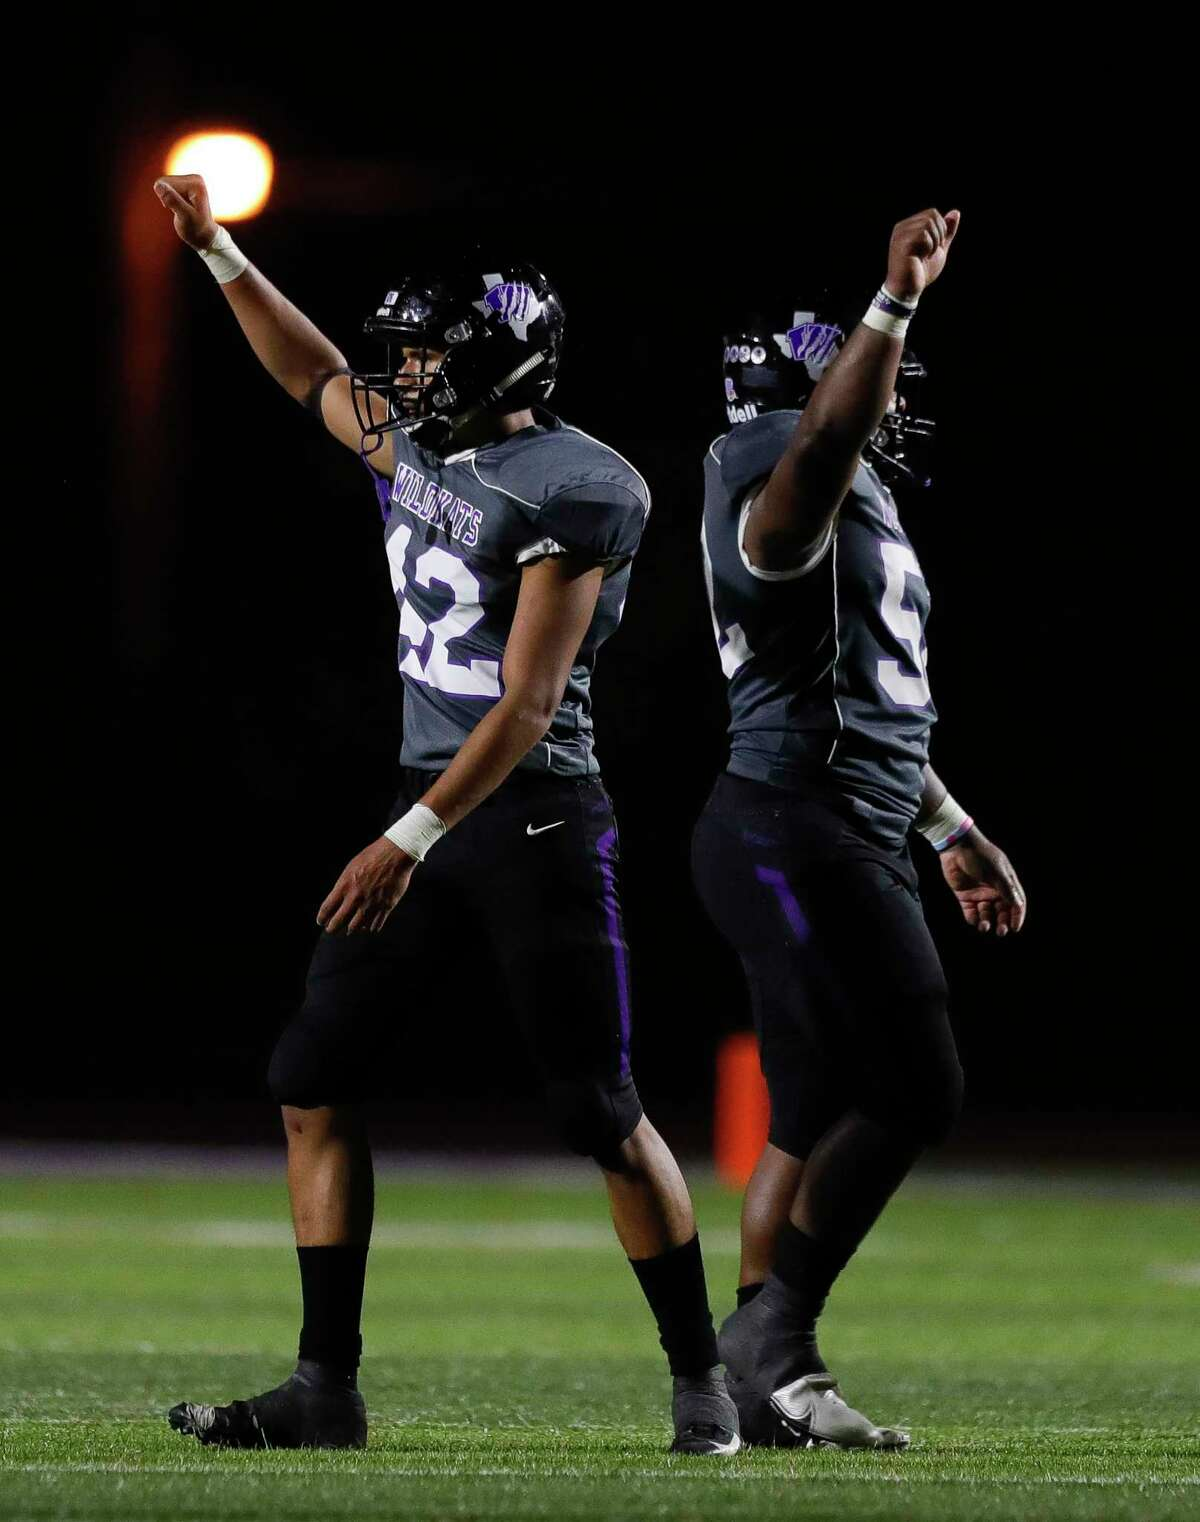 Willis defensive linemen David Soriano (42) holds up a fist after forcing a fourth down during the third quarter of a non-district high school football game at Berton A. Yates Stadium, Friday, Oct. 2, 2020, in Willis.